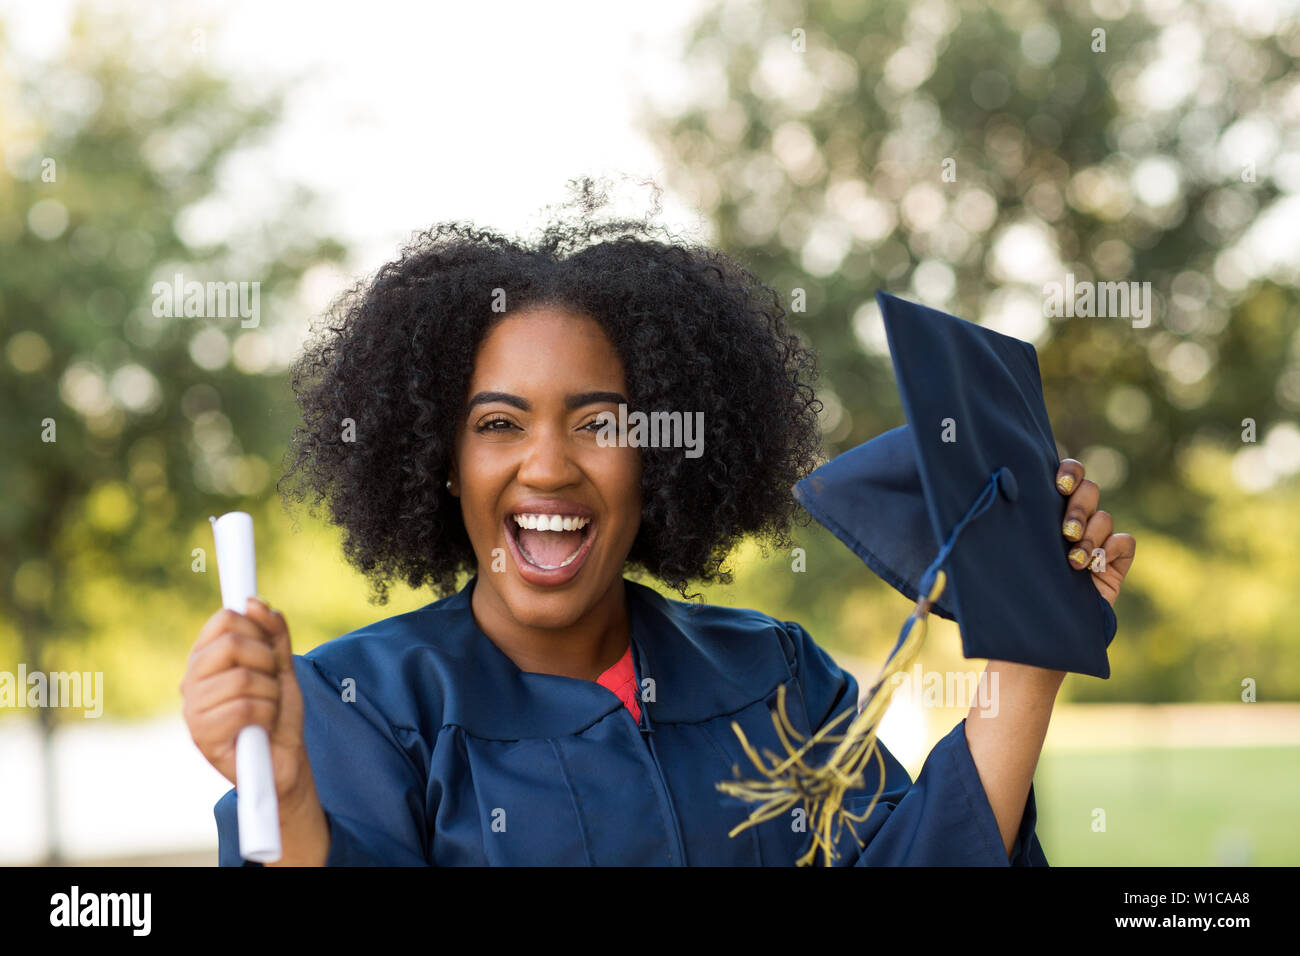 Confident African American woman at her graduation. - Stock Image